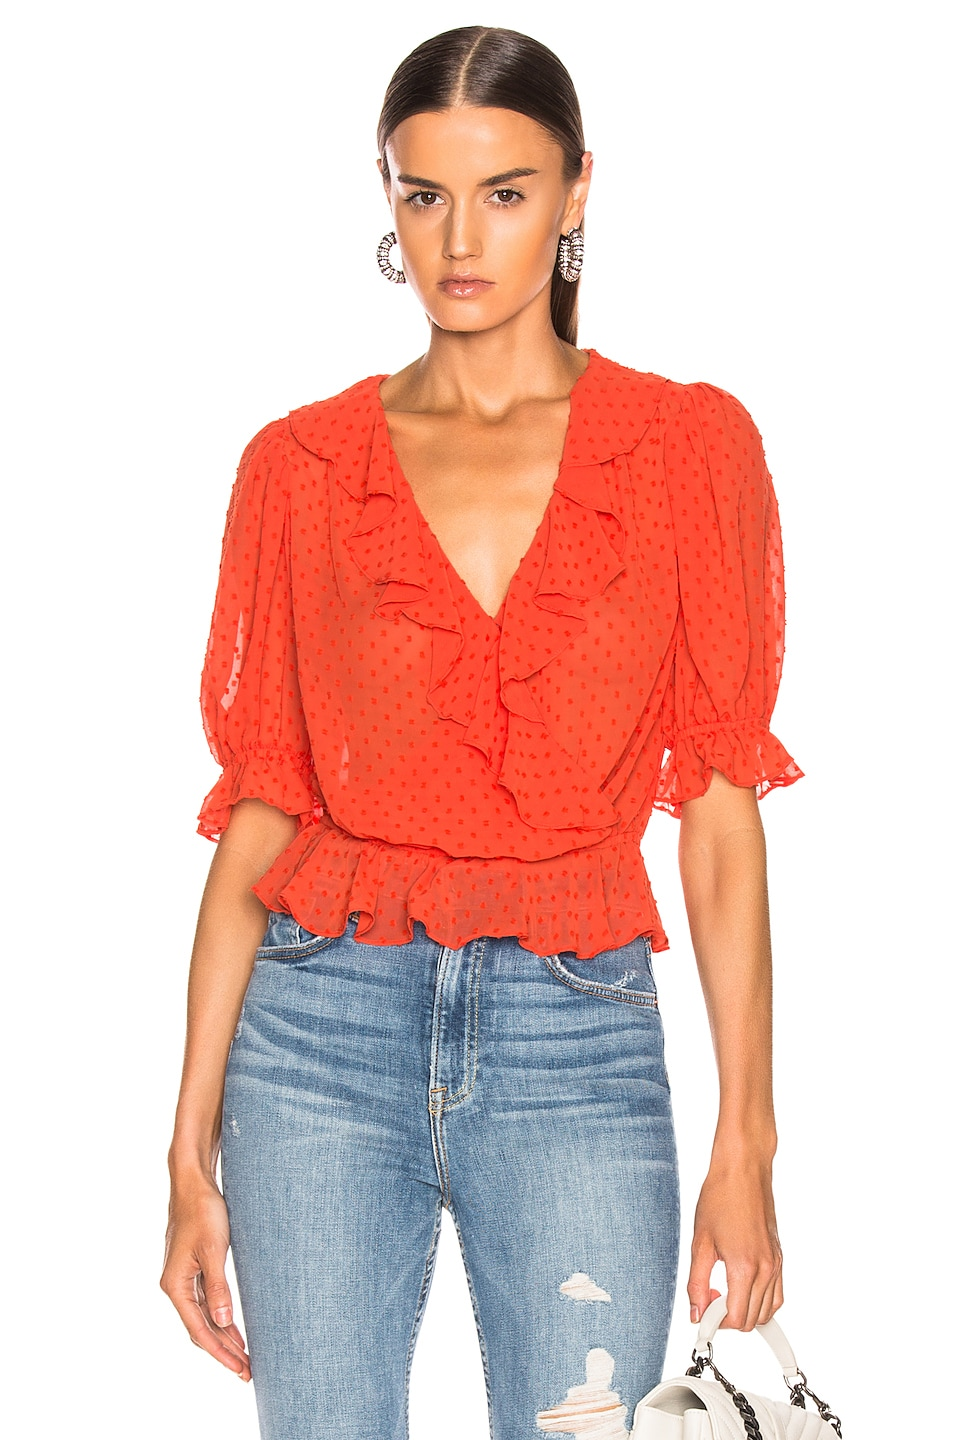 Image 1 of ICONS Objects of Devotion Cha Cha Blouse in Hot Orange